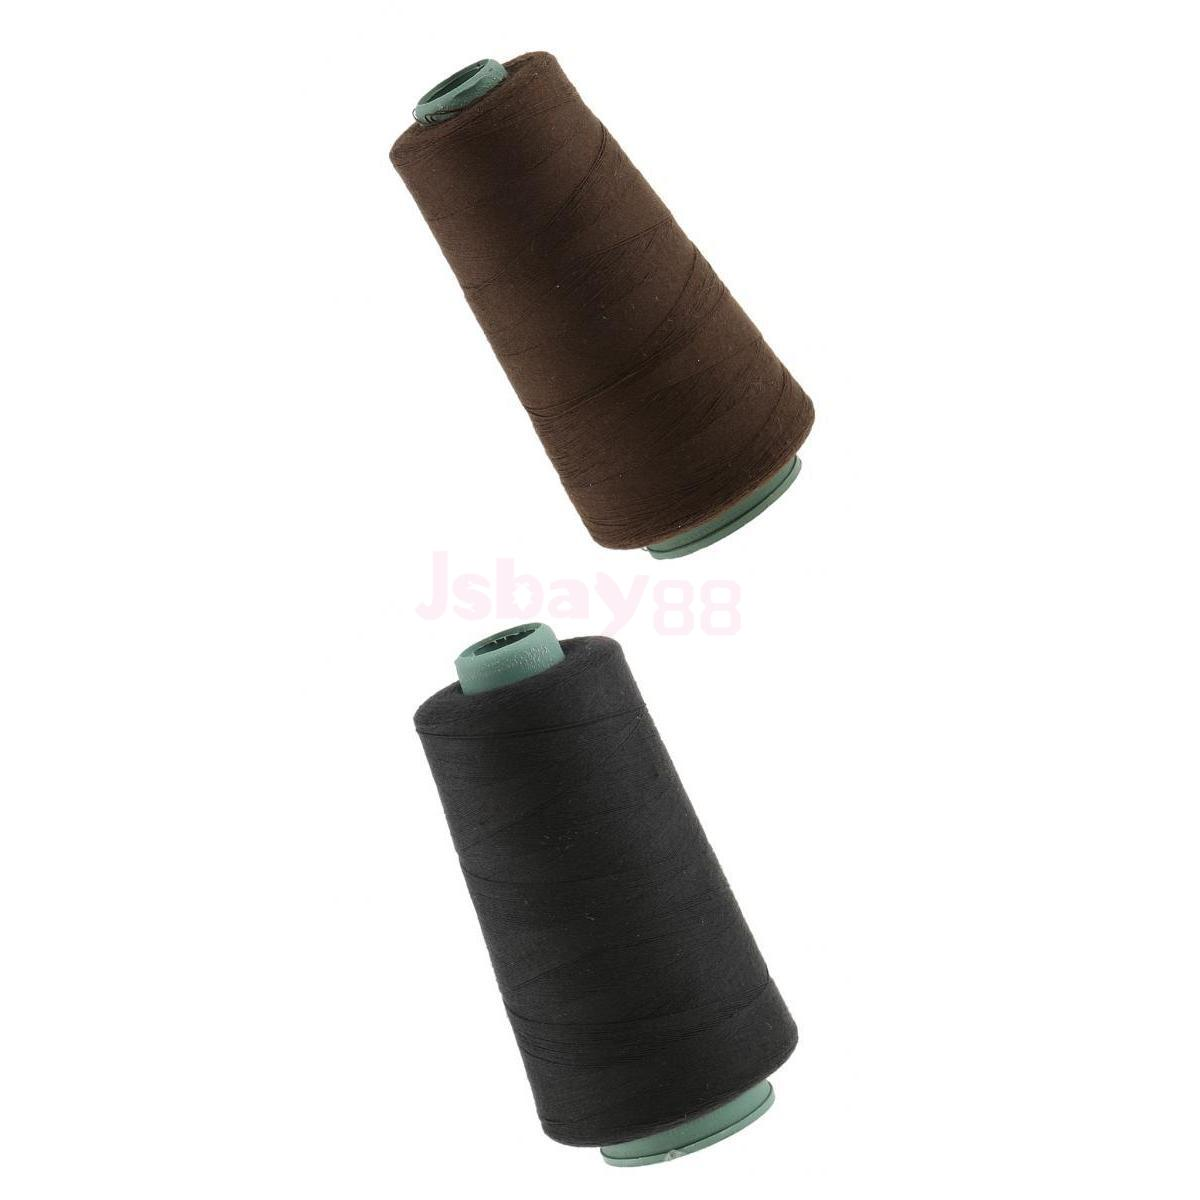 2 Pieces Hair Weaving Sewing Decor Thread Spool for Wig Weft Hair Extensions ...